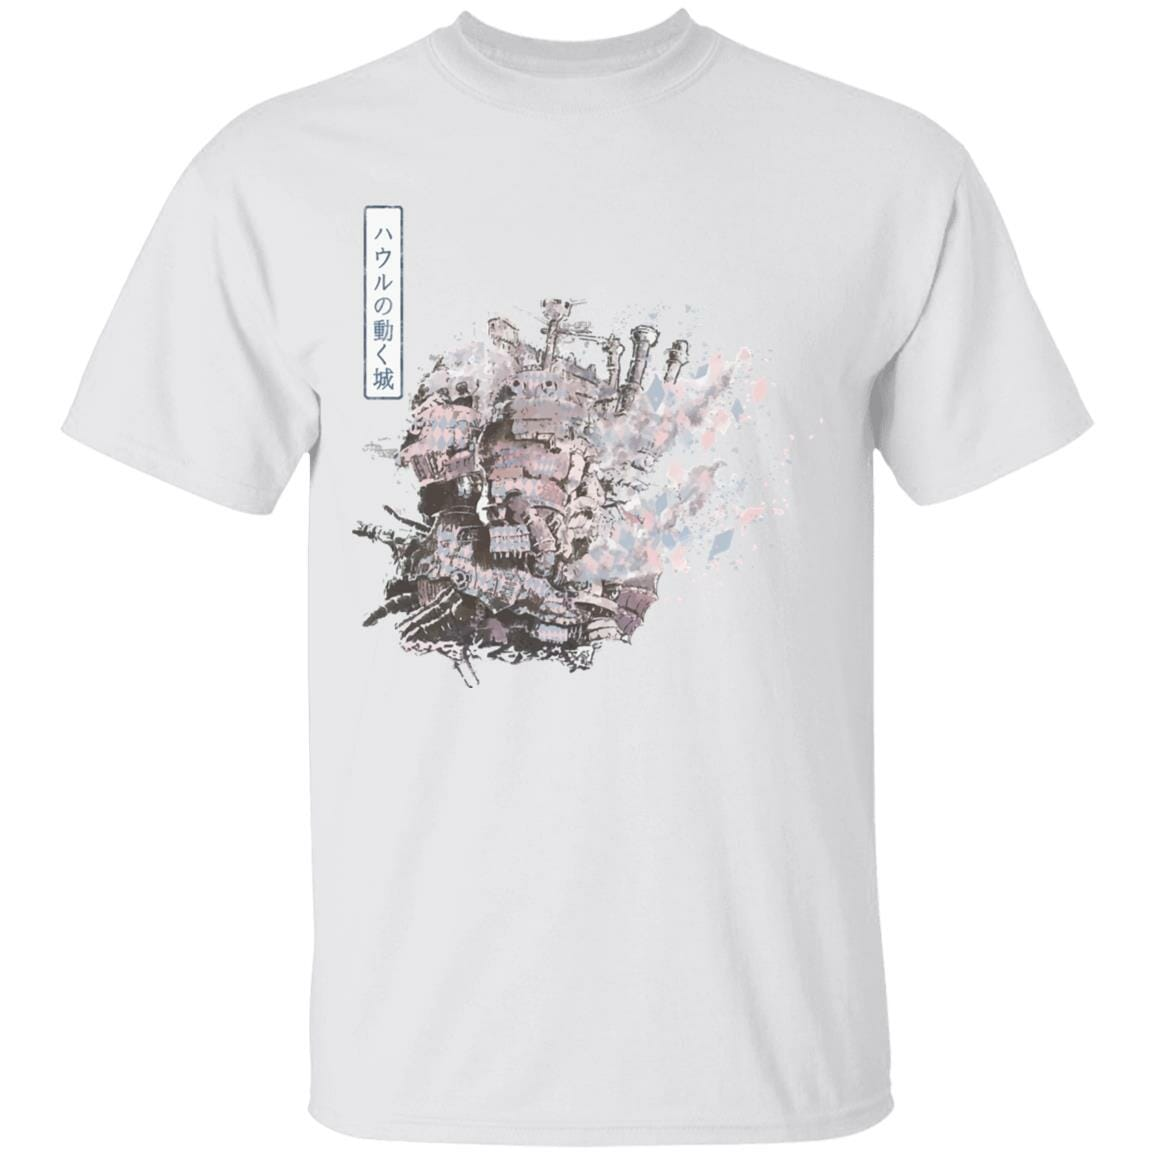 Howl's Moving Castle Classic T Shirt